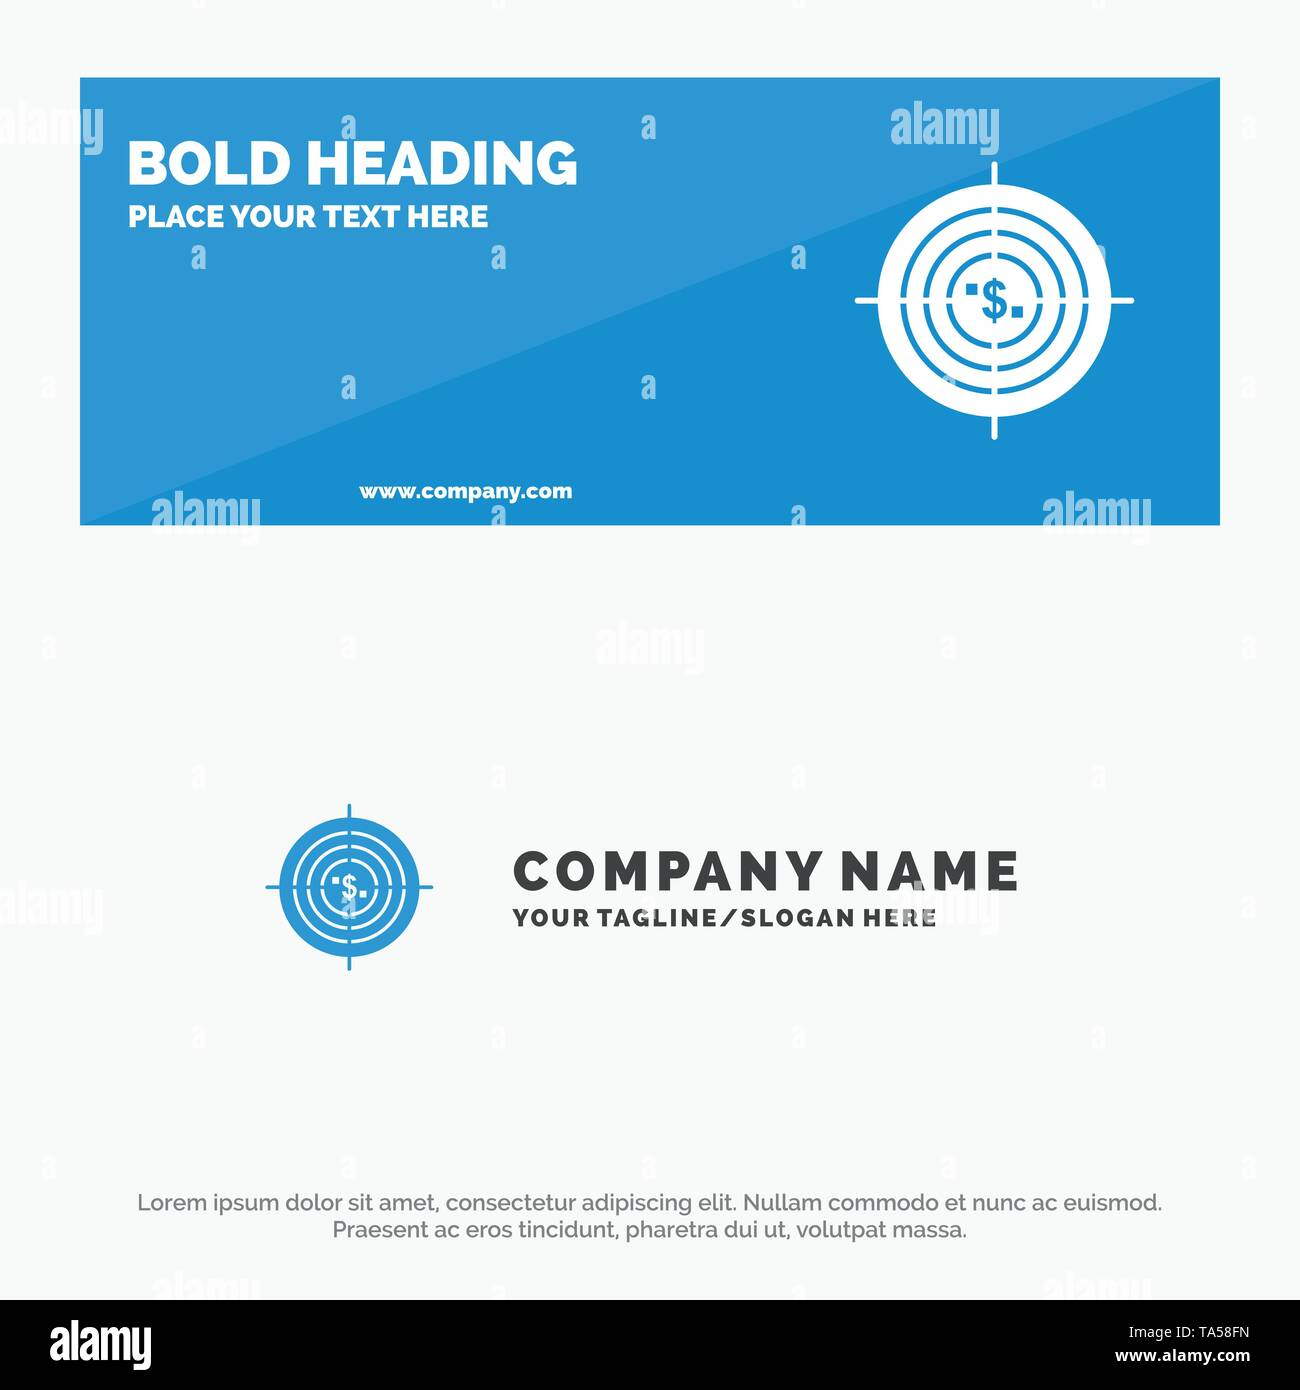 Target, Aim, Business, Cash, Financial, Funds, Hunting, Money SOlid Icon Website Banner and Business Logo Template - Stock Image